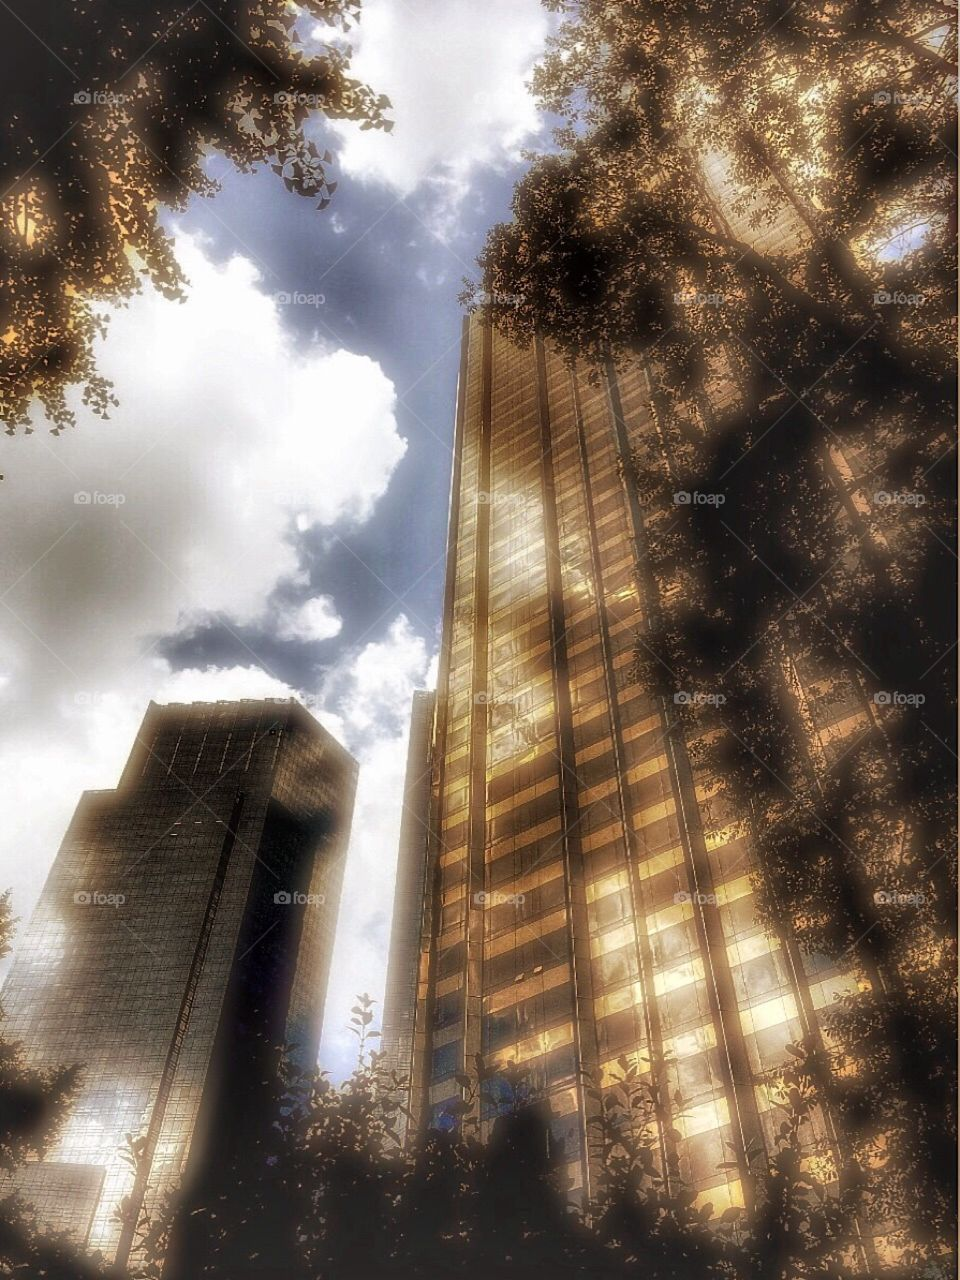 Outdoors/Street Photography, Trump International Hotel & Tower and Time Warner Building, Manhattan, New York City. Instagram,@PennyPeronto